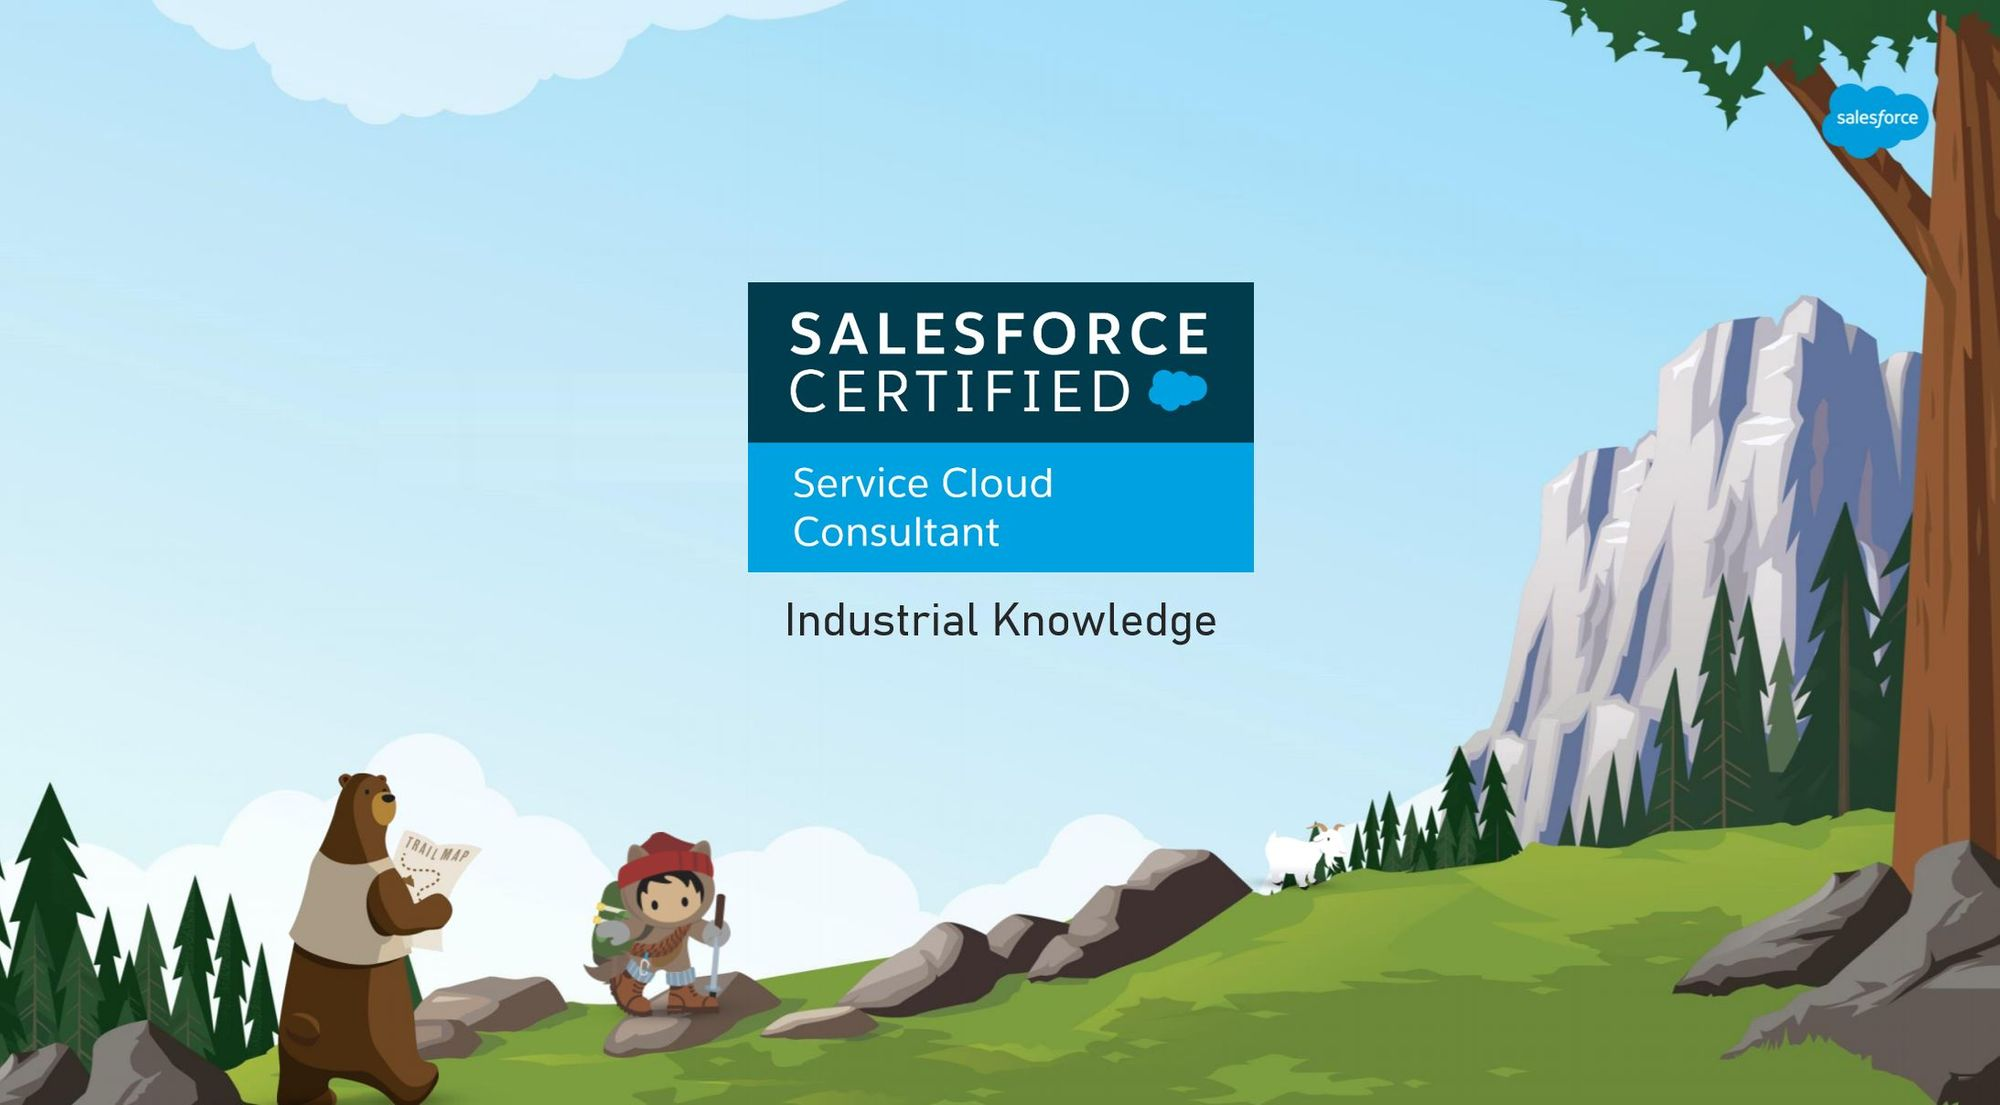 Salesforce Service Cloud Consultant Exam Preparation: Industry Knowledge